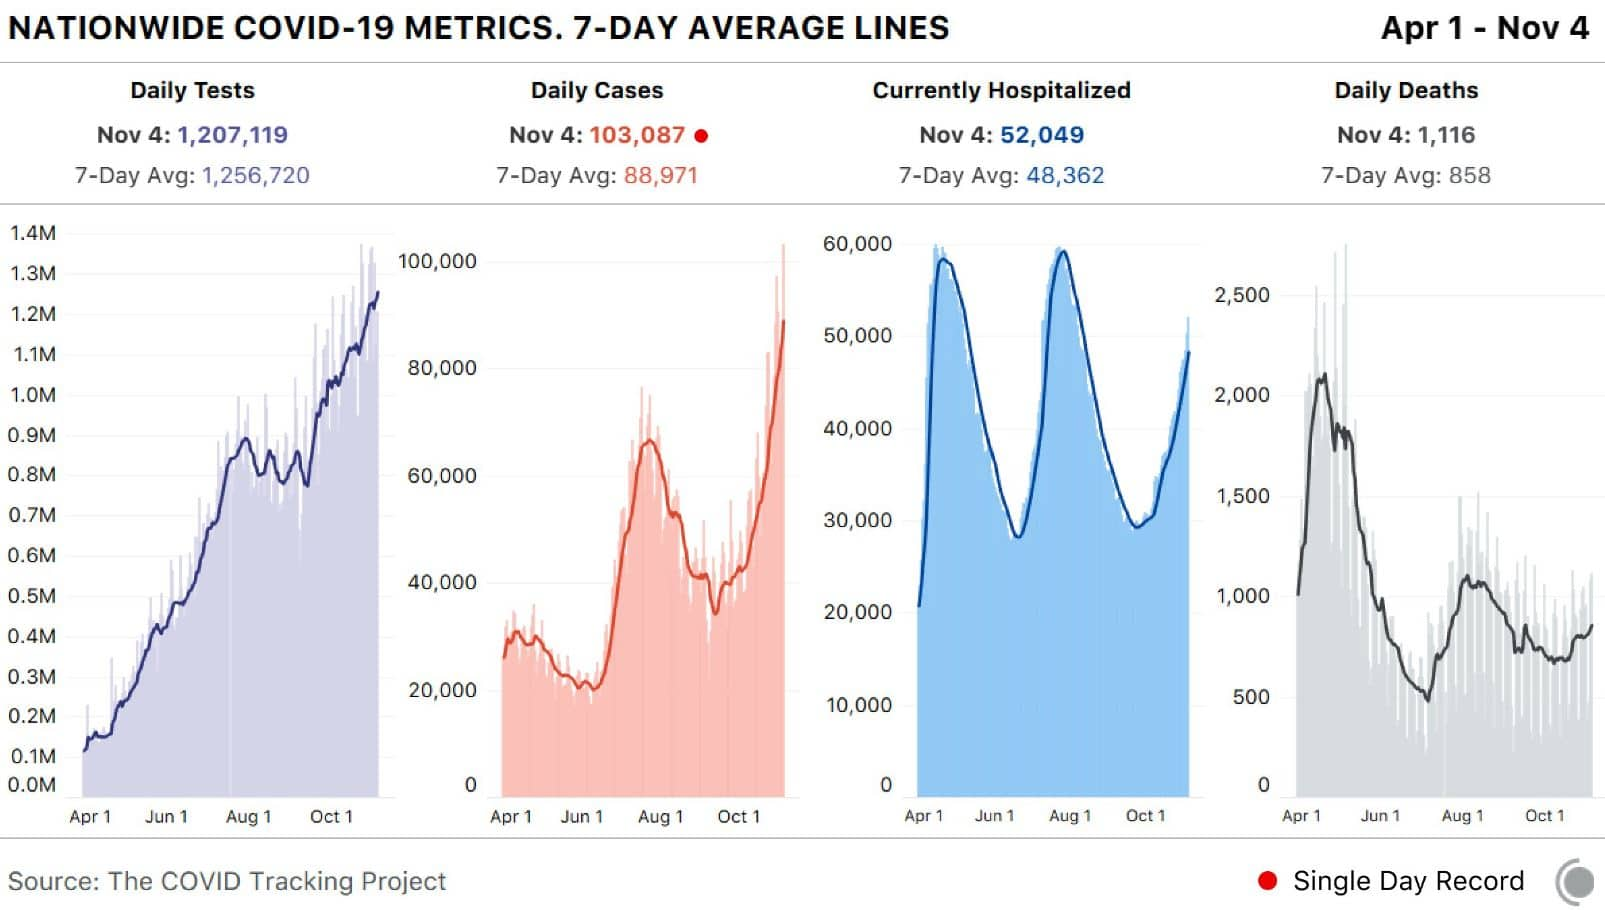 Nationwide Covid-19 Metrics 7-Day Average Lines